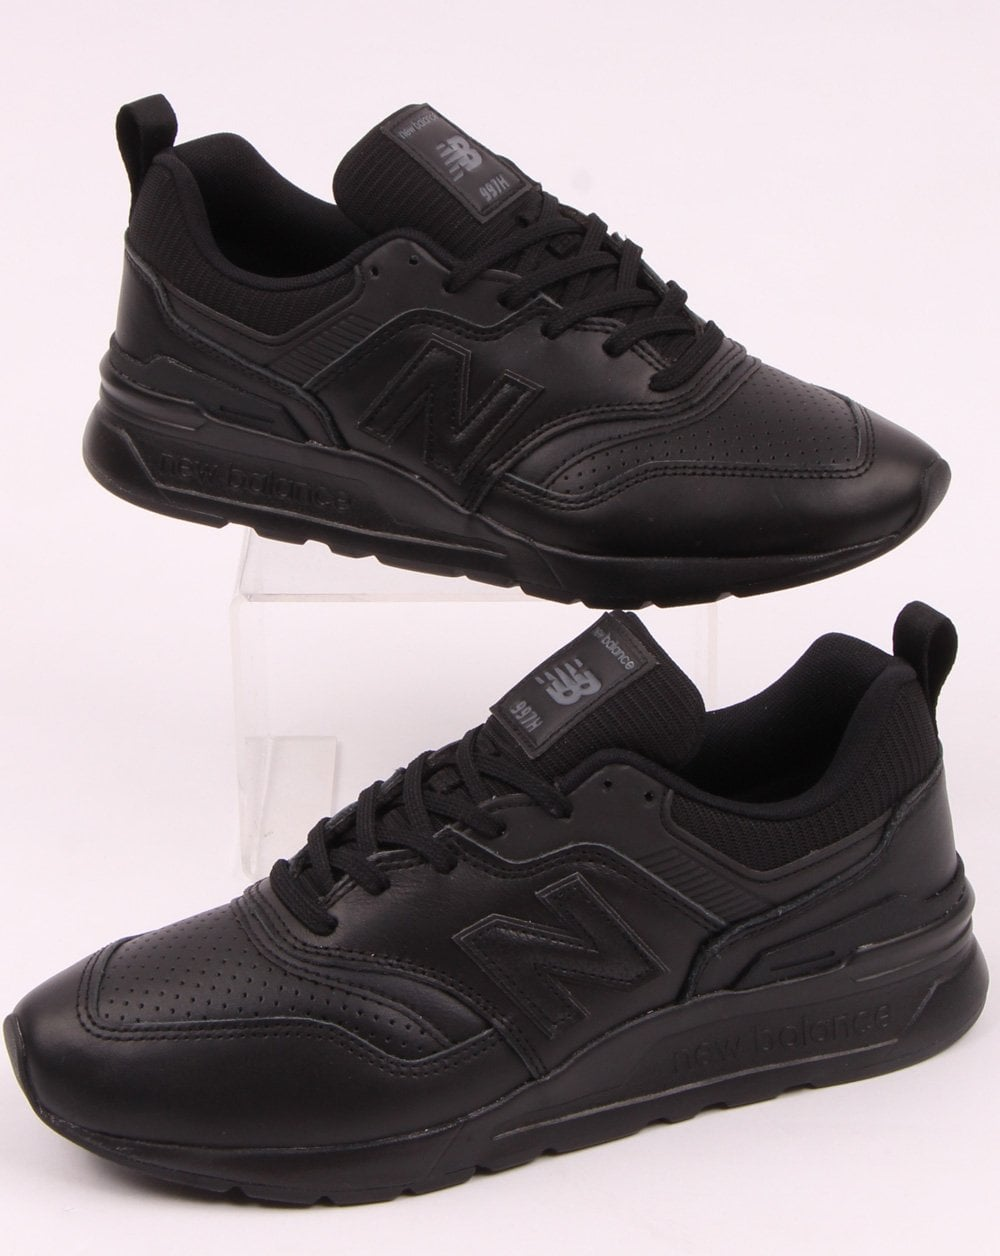 competitive price 9cac5 bb670 New Balance 997 Leather Trainers Black